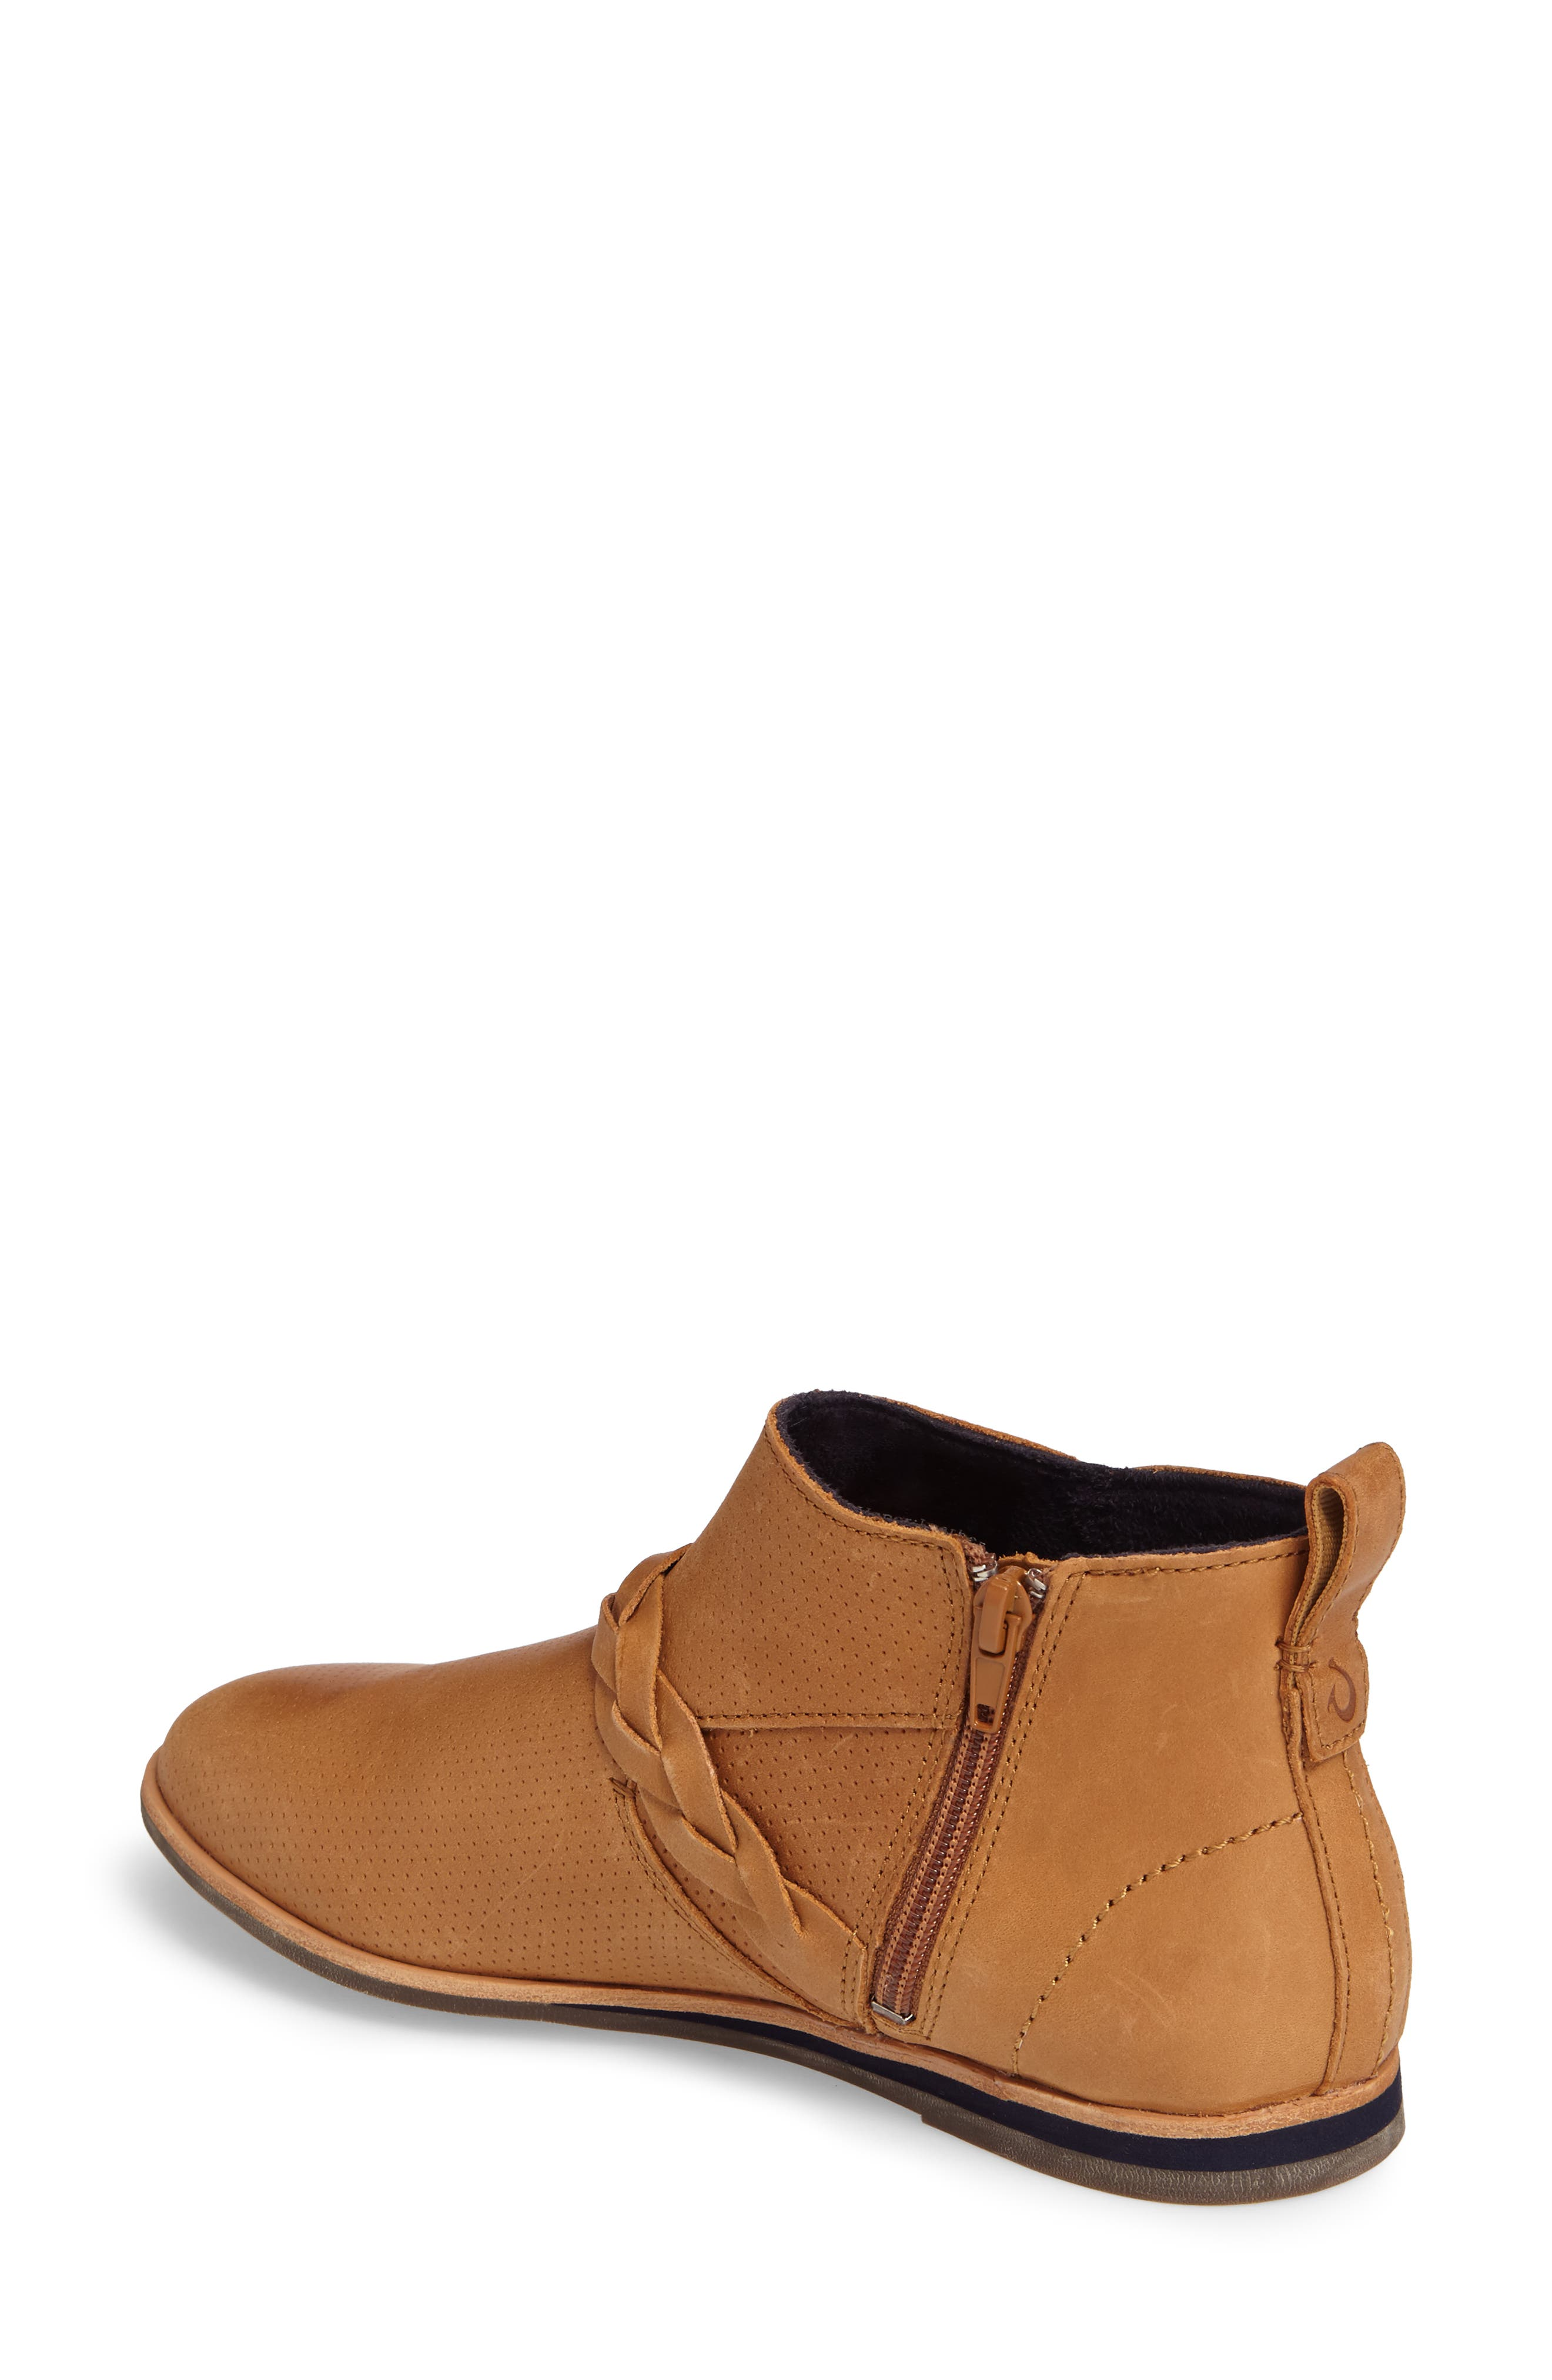 Ho'olu Perforated Bootie,                             Alternate thumbnail 2, color,                             Pecan/ Pecan Leather